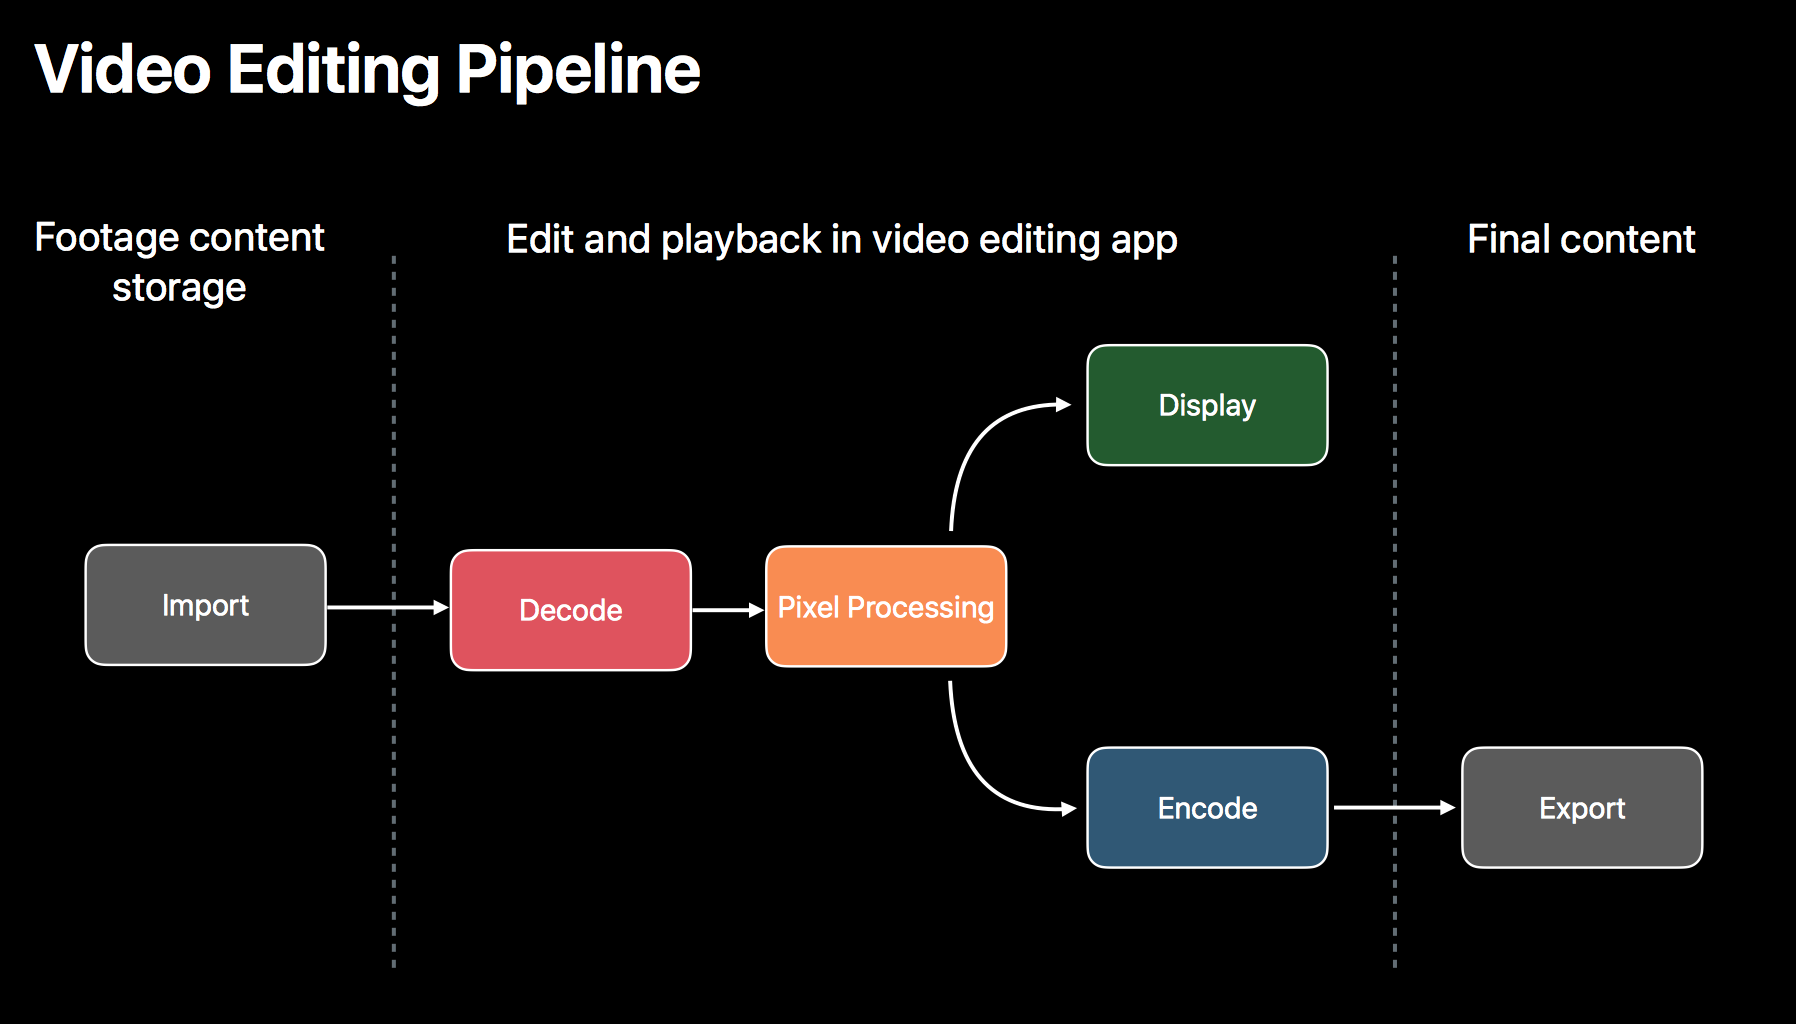 Video Editing Pipeline